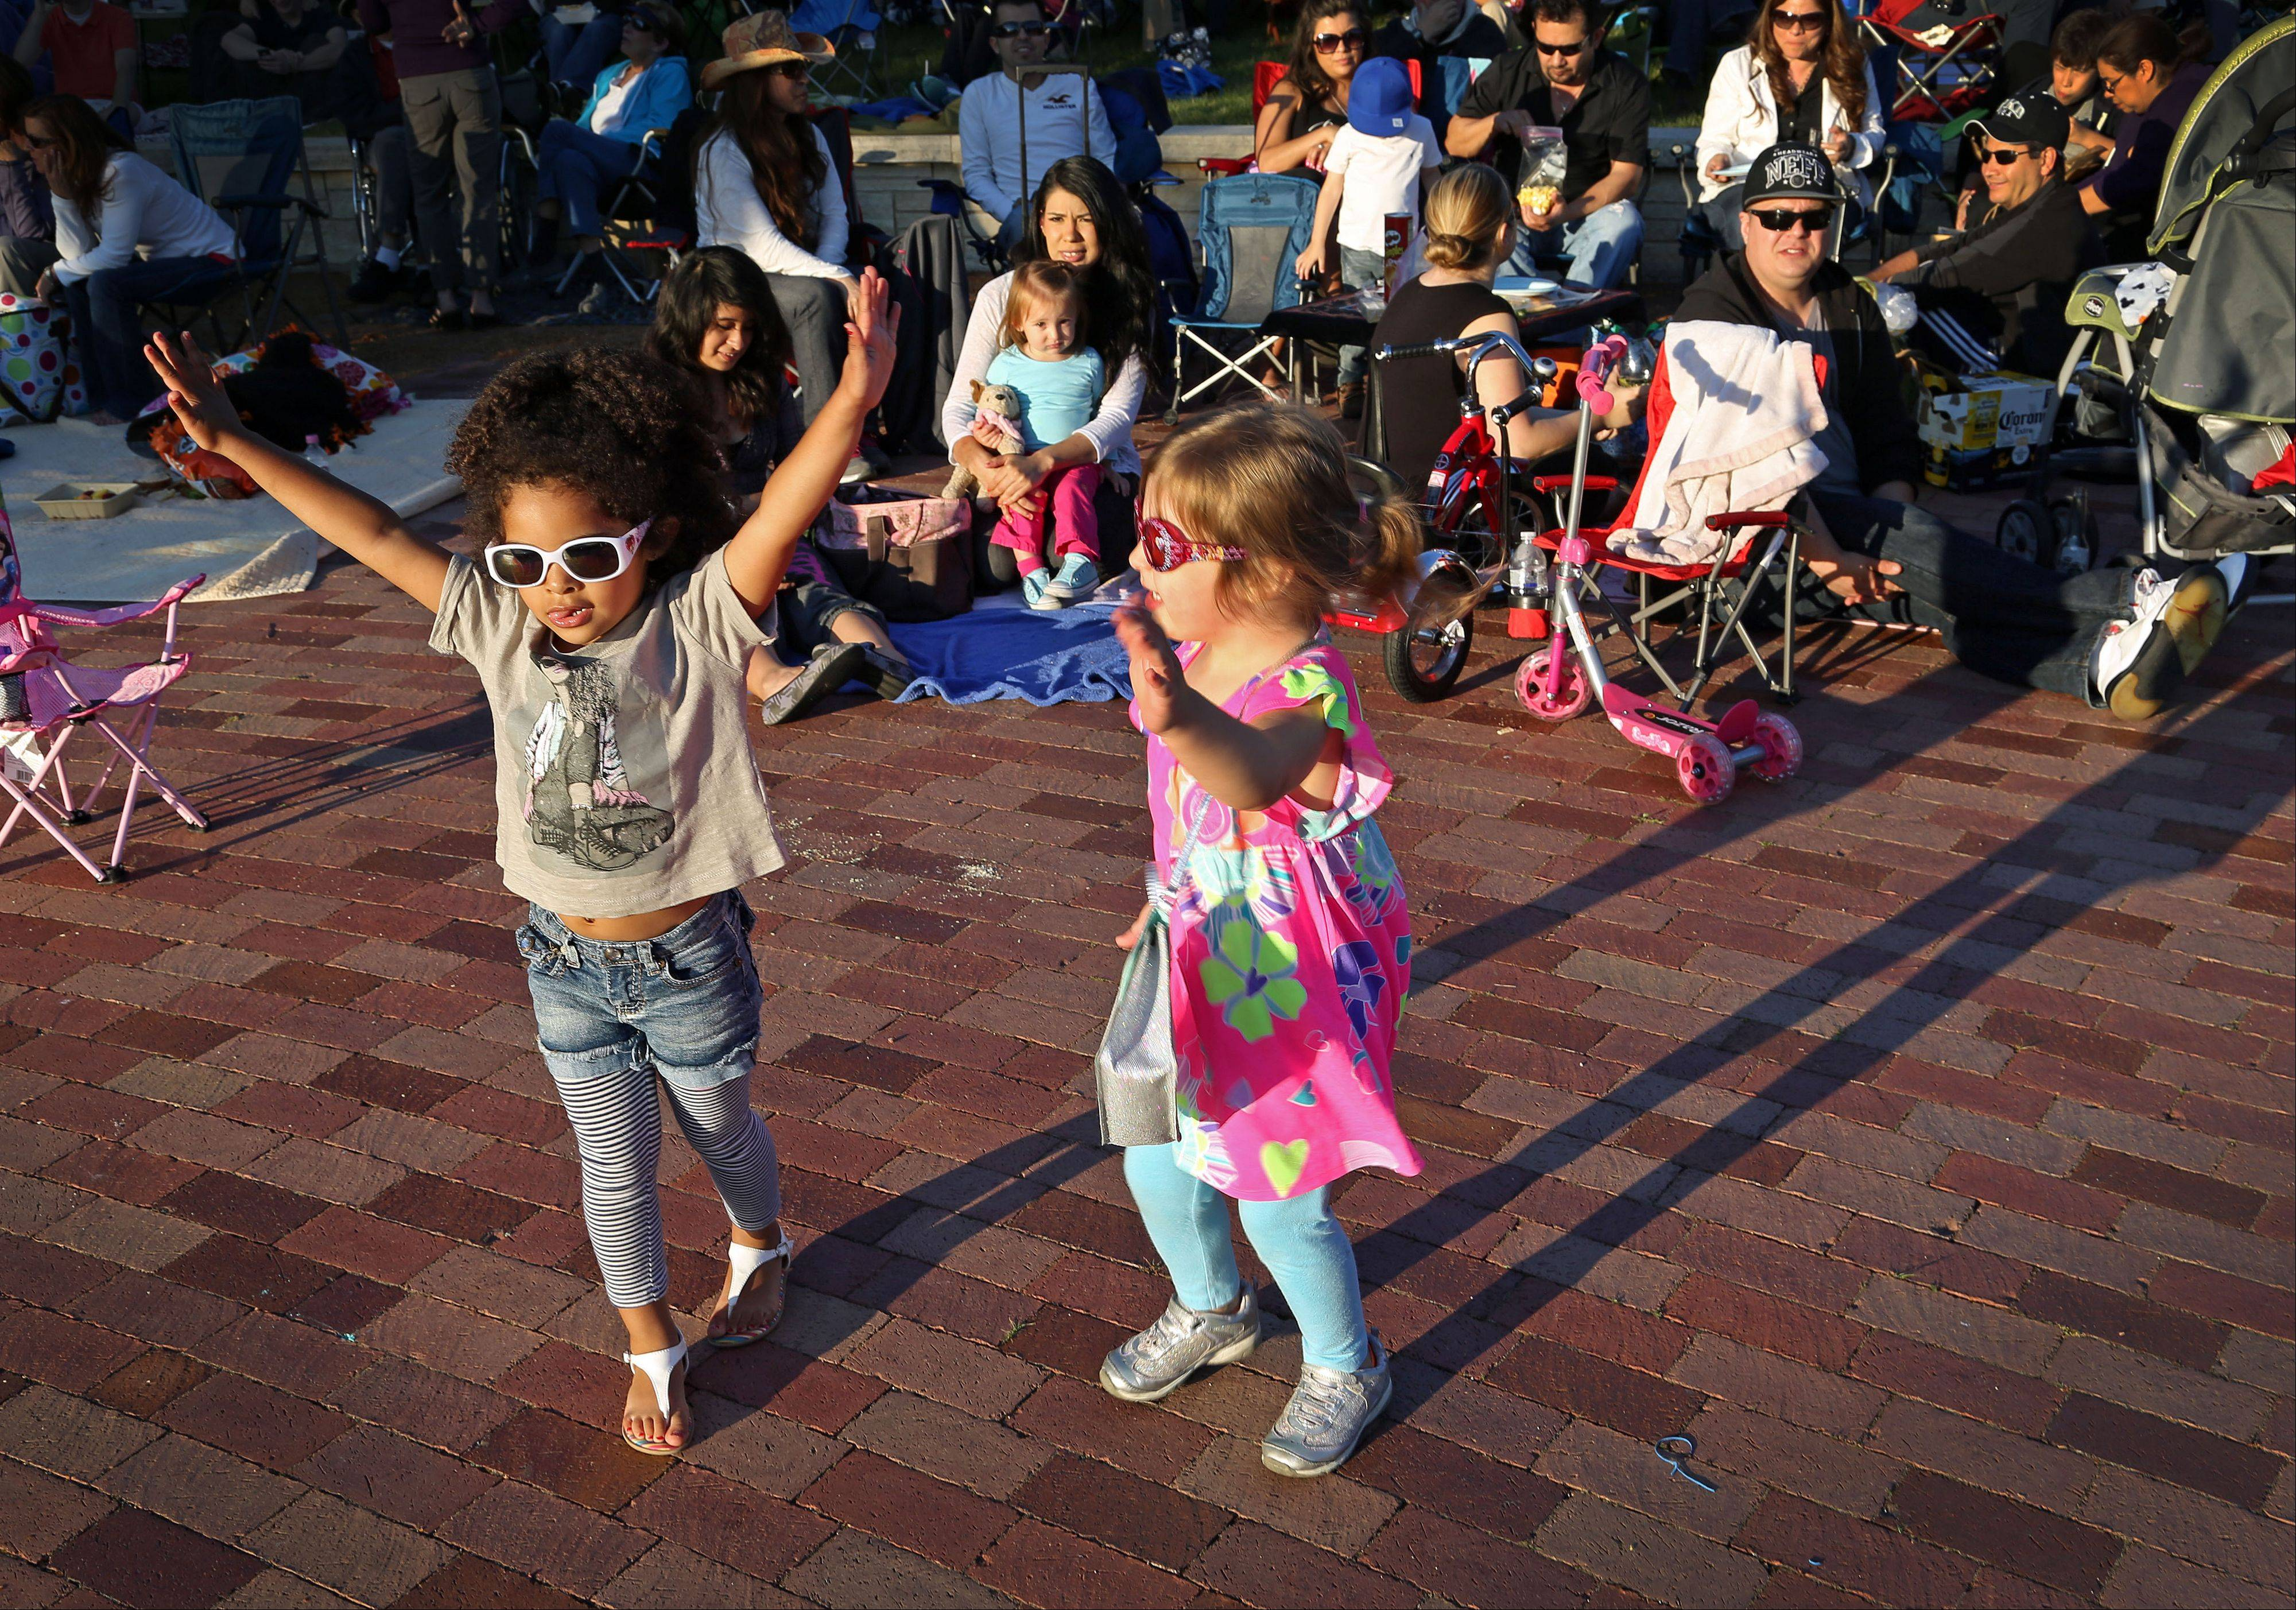 3-year-old Bella Stapleton, left, and 3-year-old Bella Davies of Gurnee dance to the sounds of Chicago R&B Kings during Events in the Plaza outdoor summer concert series Tuesday night at Independence Grove Forest Preserve in Libertyville.